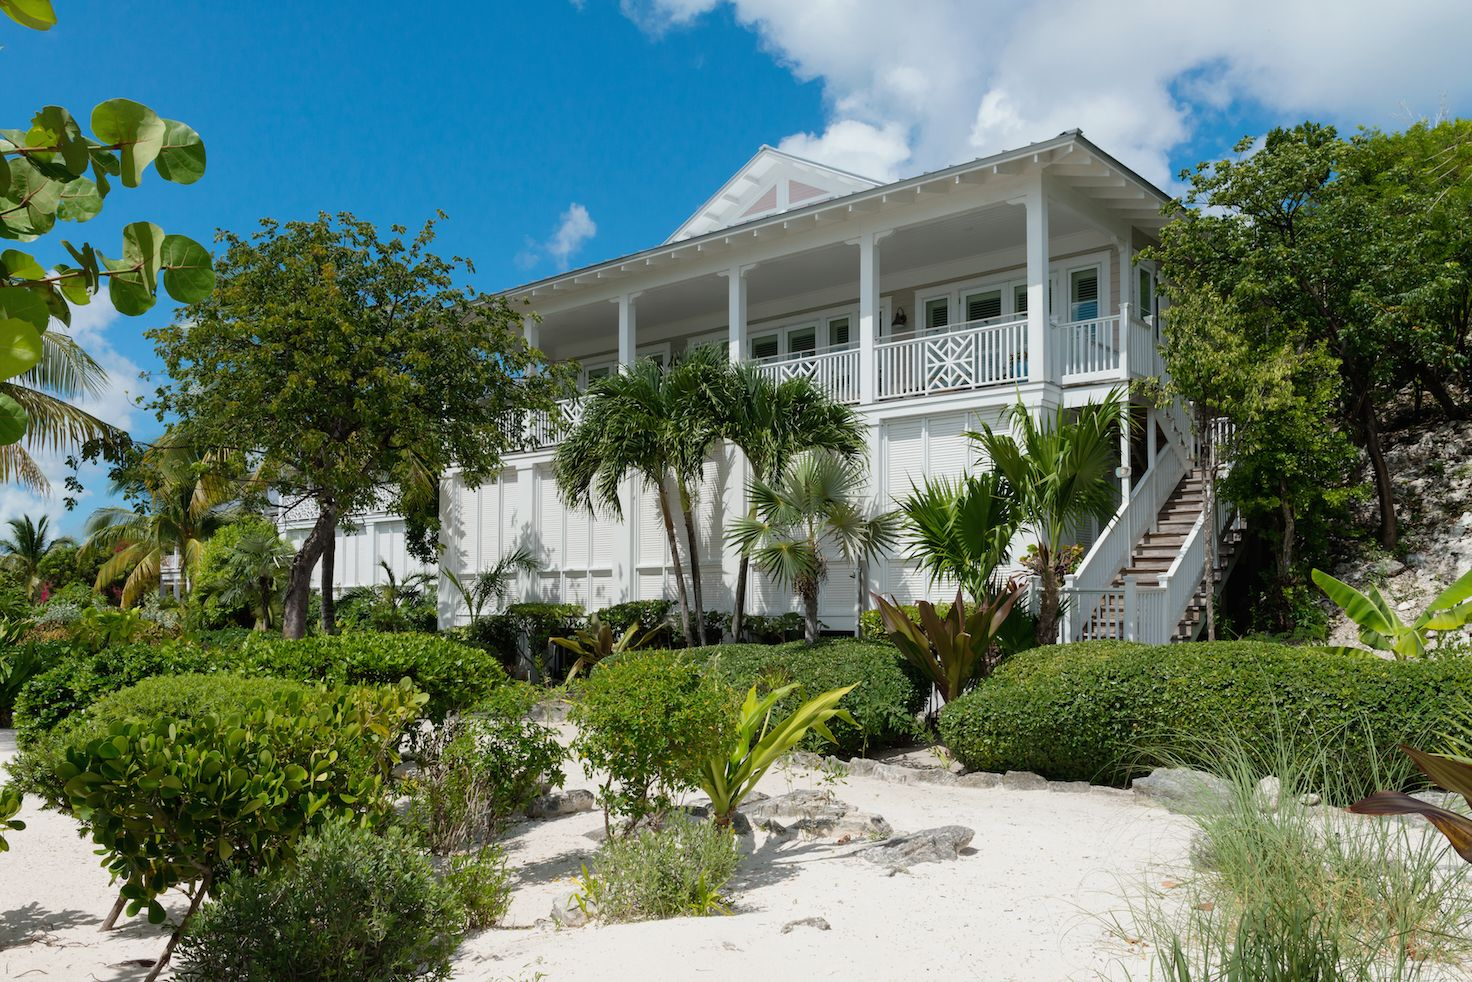 Beach House Rentals   Rent A Beach House